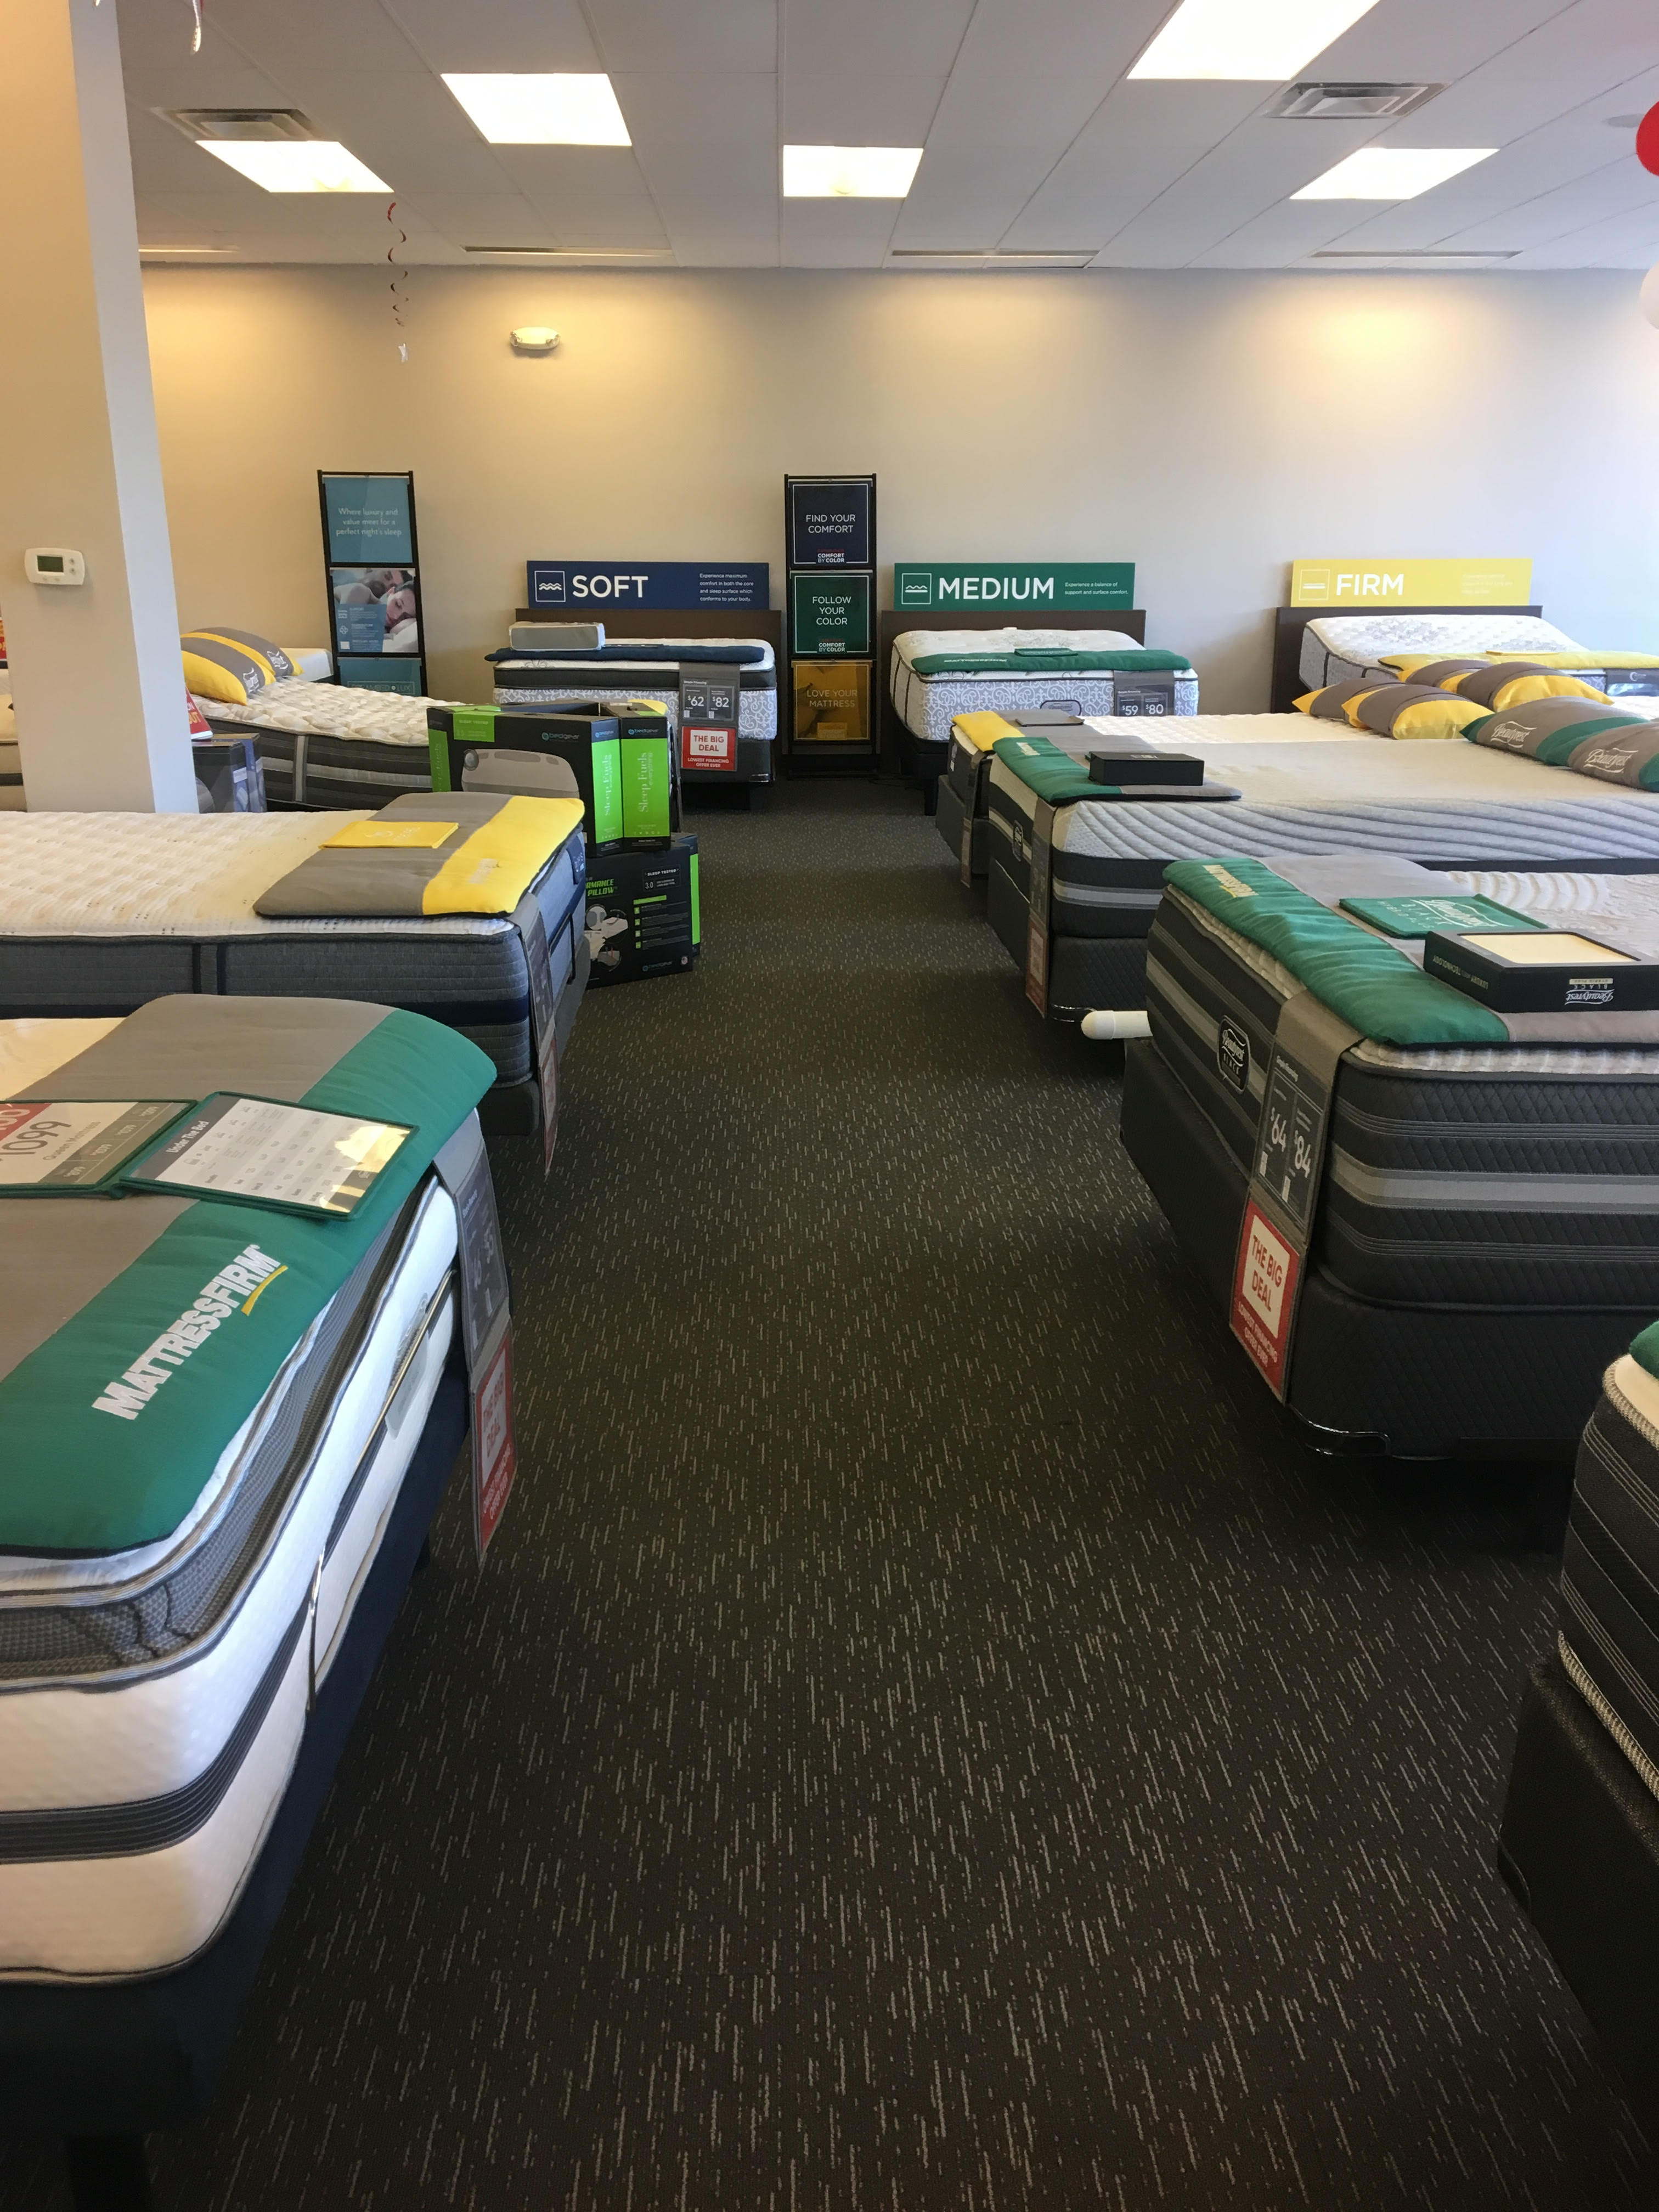 Mattress Firm Kingston North image 3